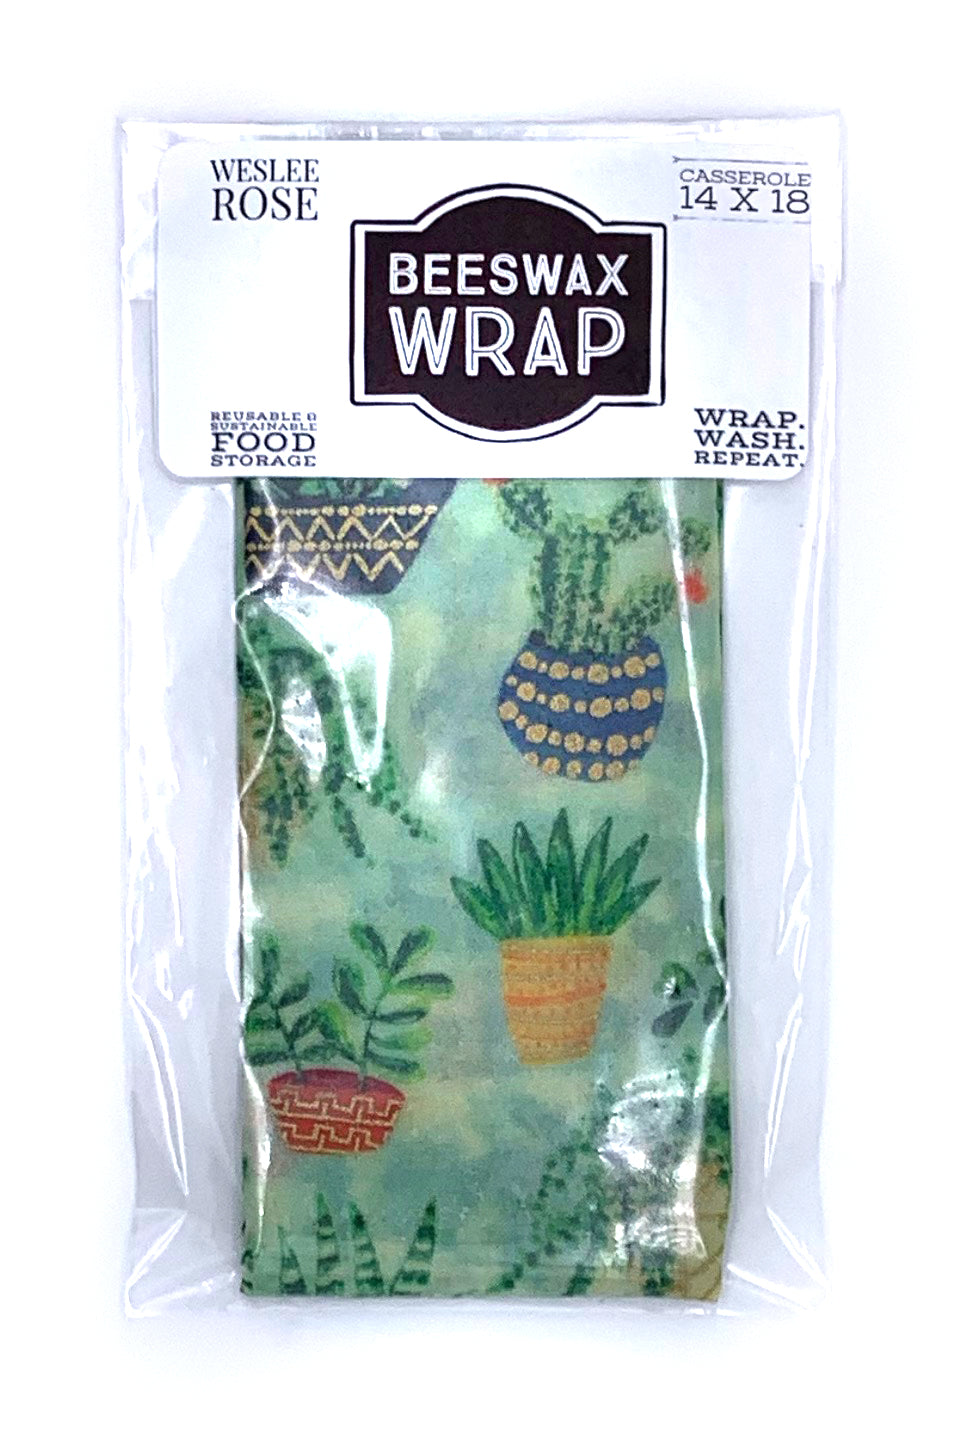 14x 18, beeswax casserole wrap. Food storage, biodegradable, made in the usa.  Succulent Pattern.